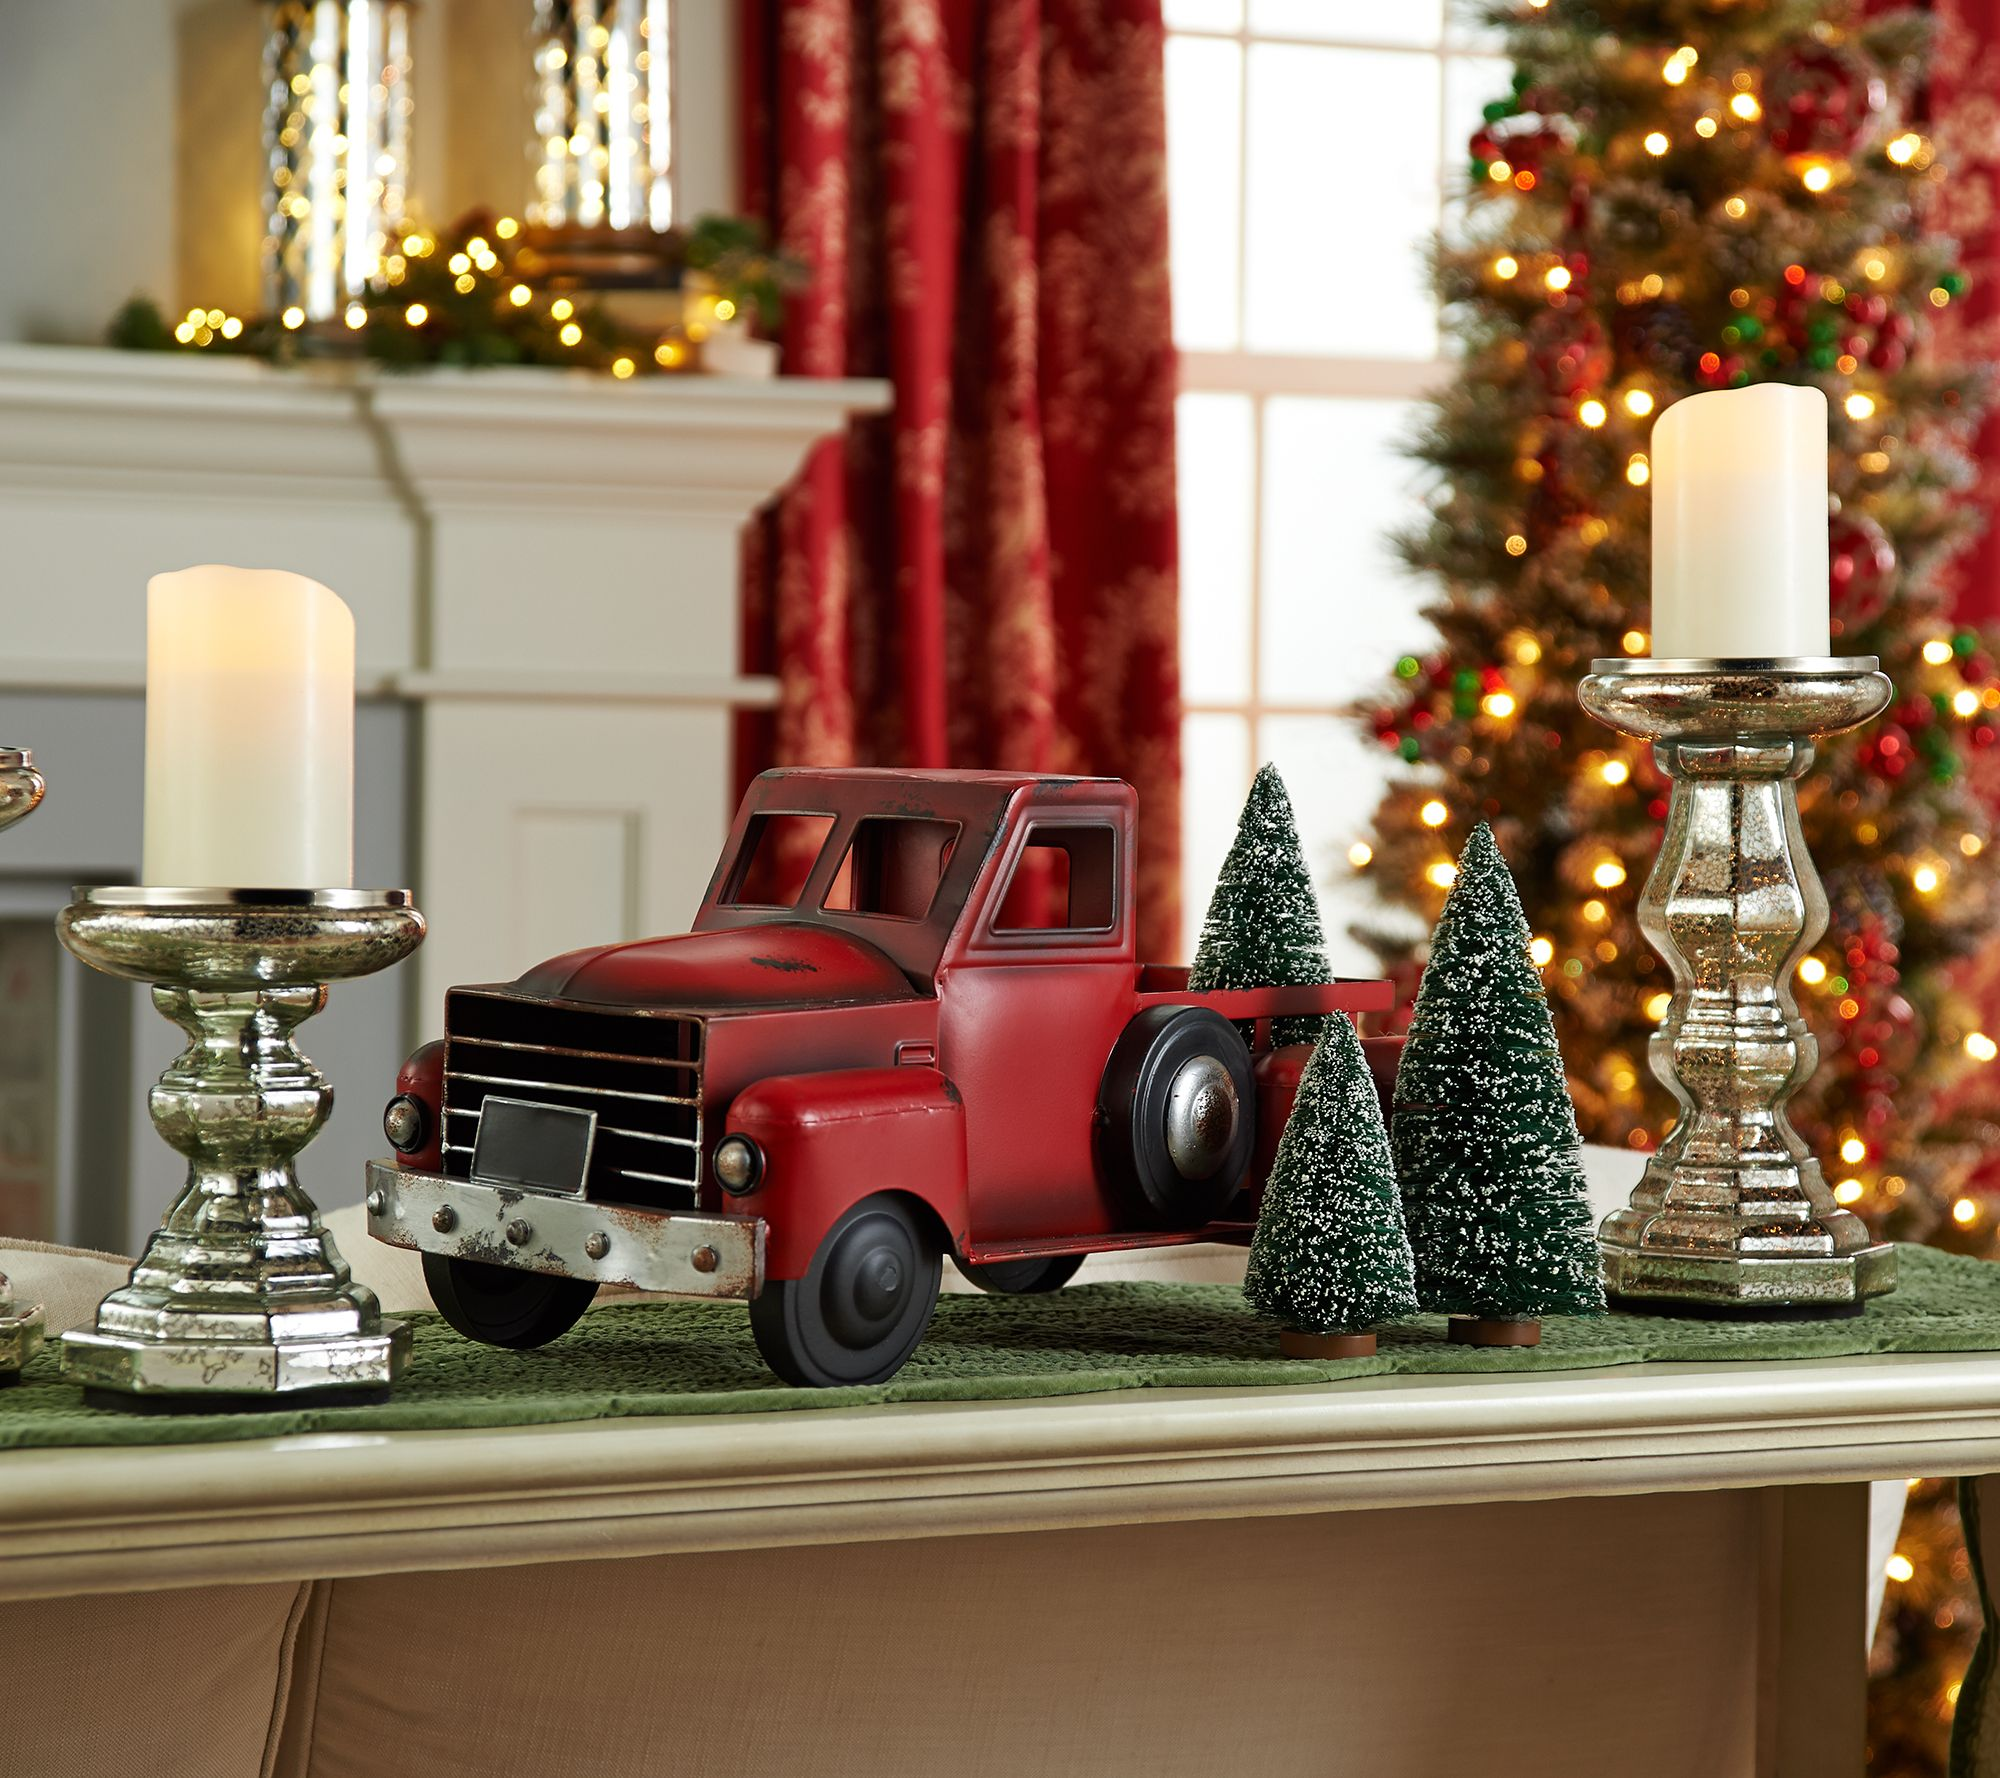 Old Truck With Christmas Tree Painting.Vintage Metal Red Truck With 3 Removable Bottlebrush Treesby Valerie Qvc Com